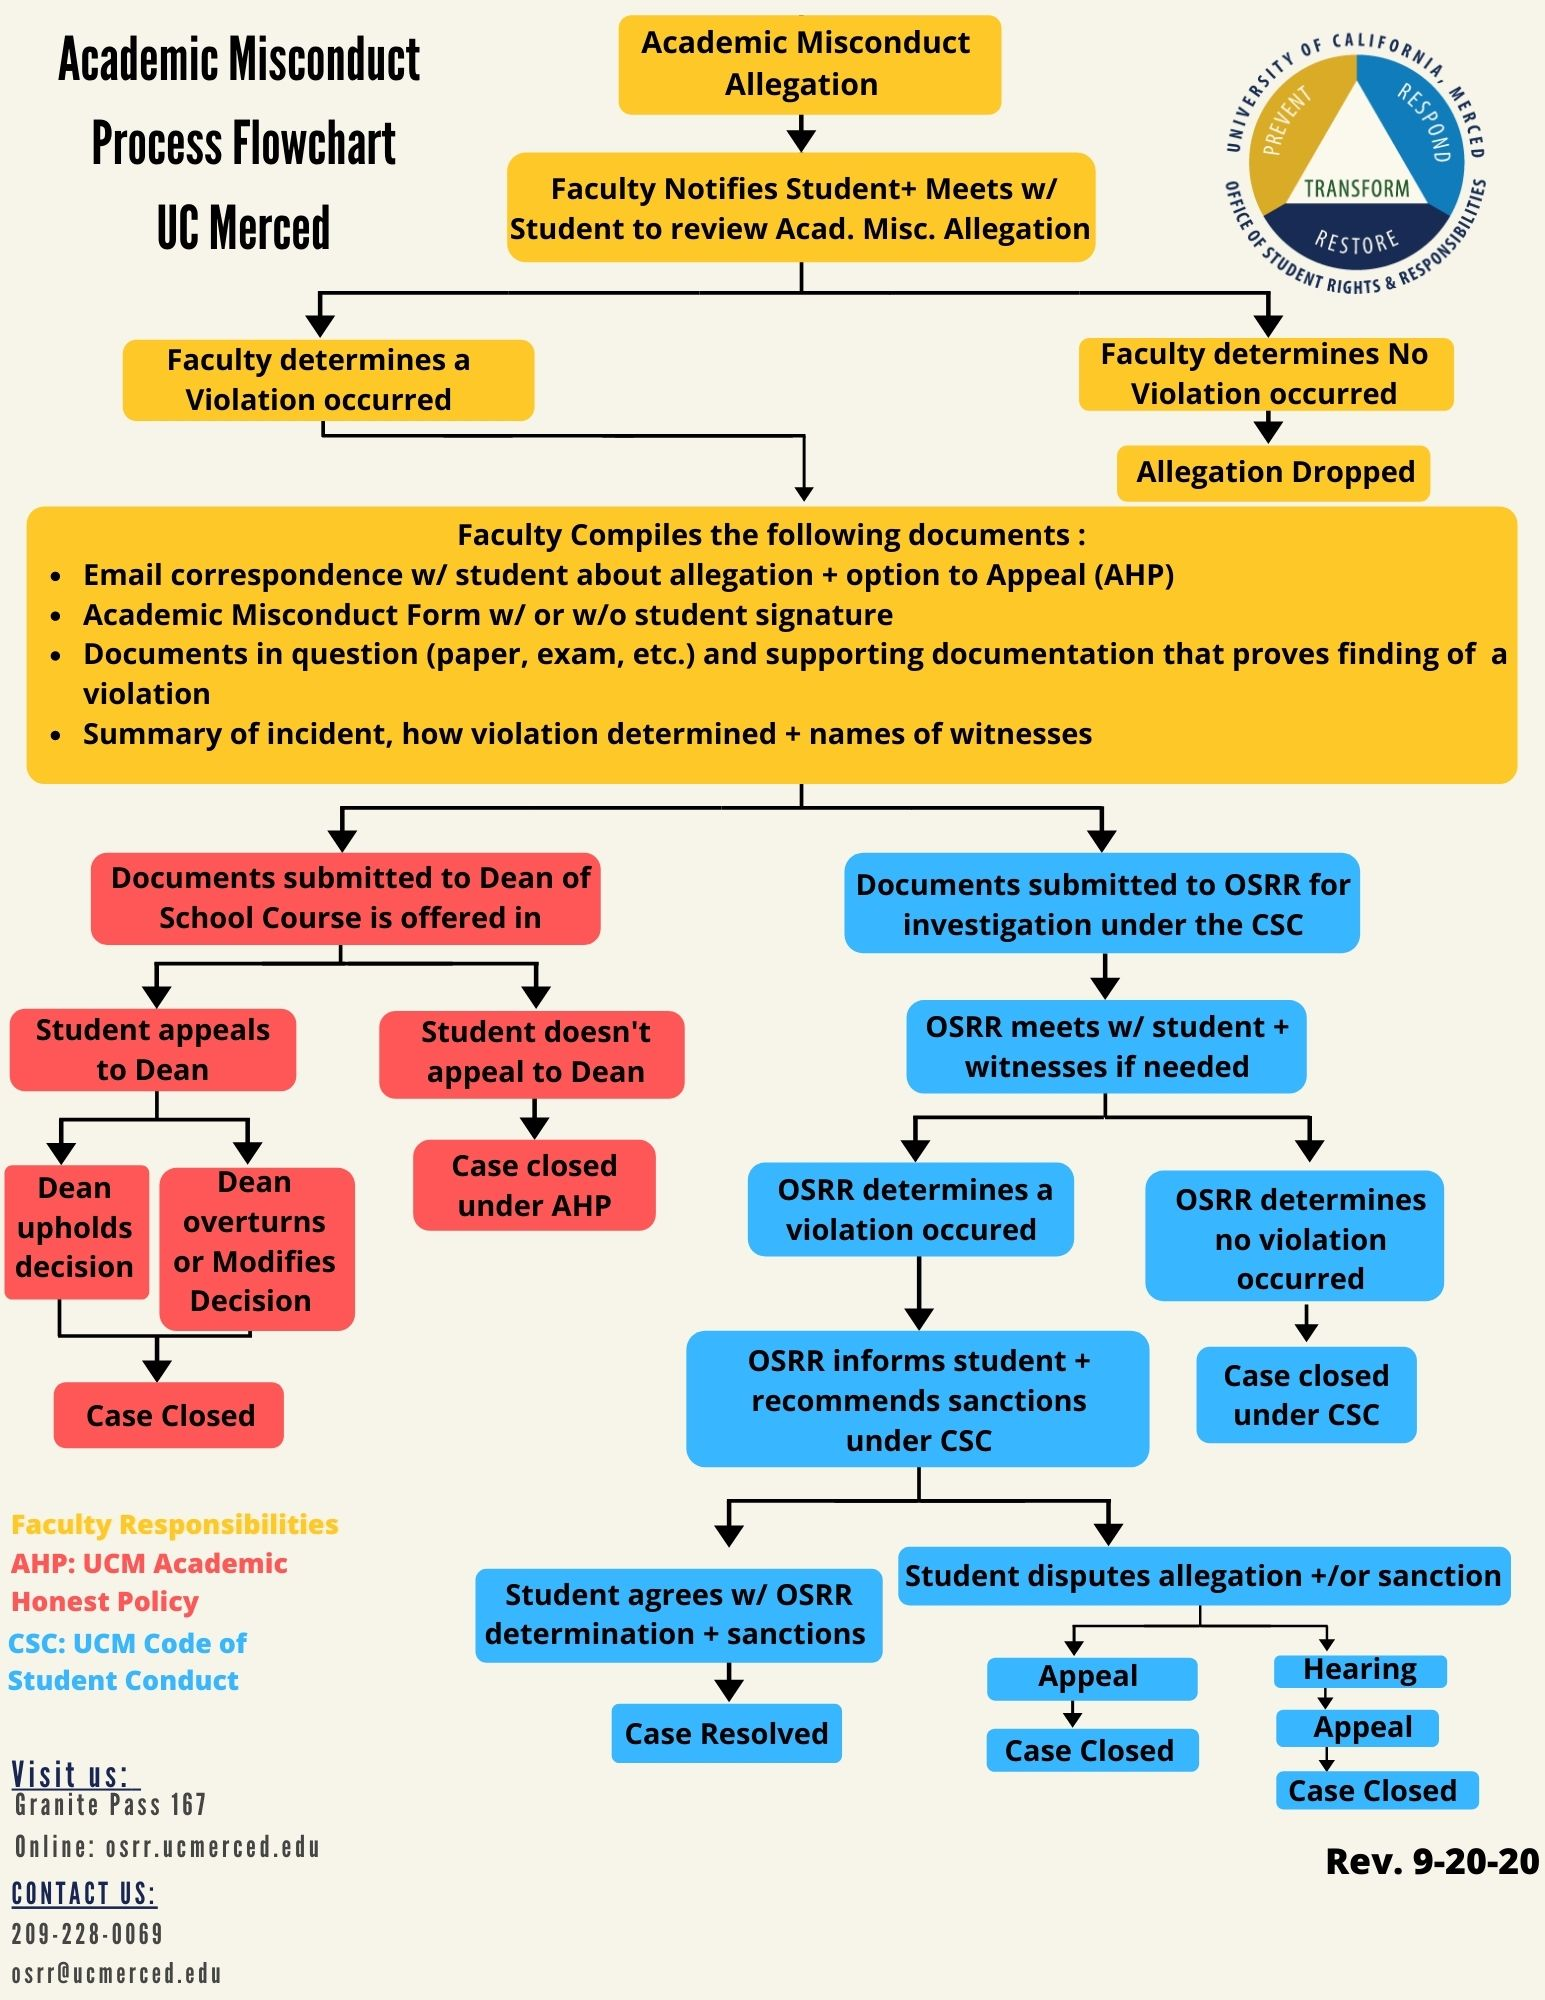 Flow chart outlining the academic misconduct process